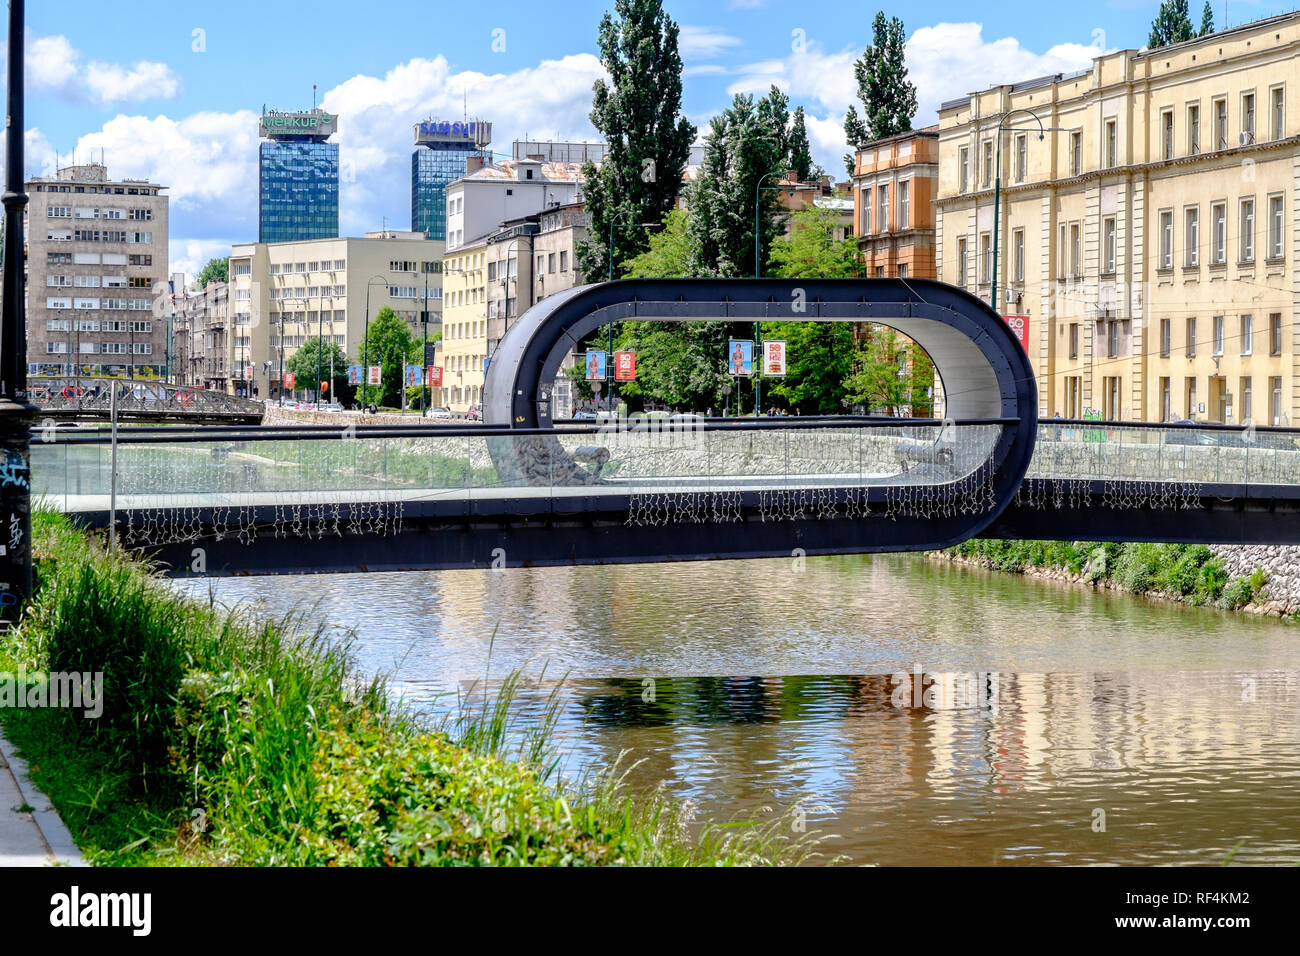 Festina Lente (Latin for 'make haste slowly') bridge over the Miljacka river in Sarajevo - the funky loop design exhorts pedestrians to enjoy the view - Stock Image